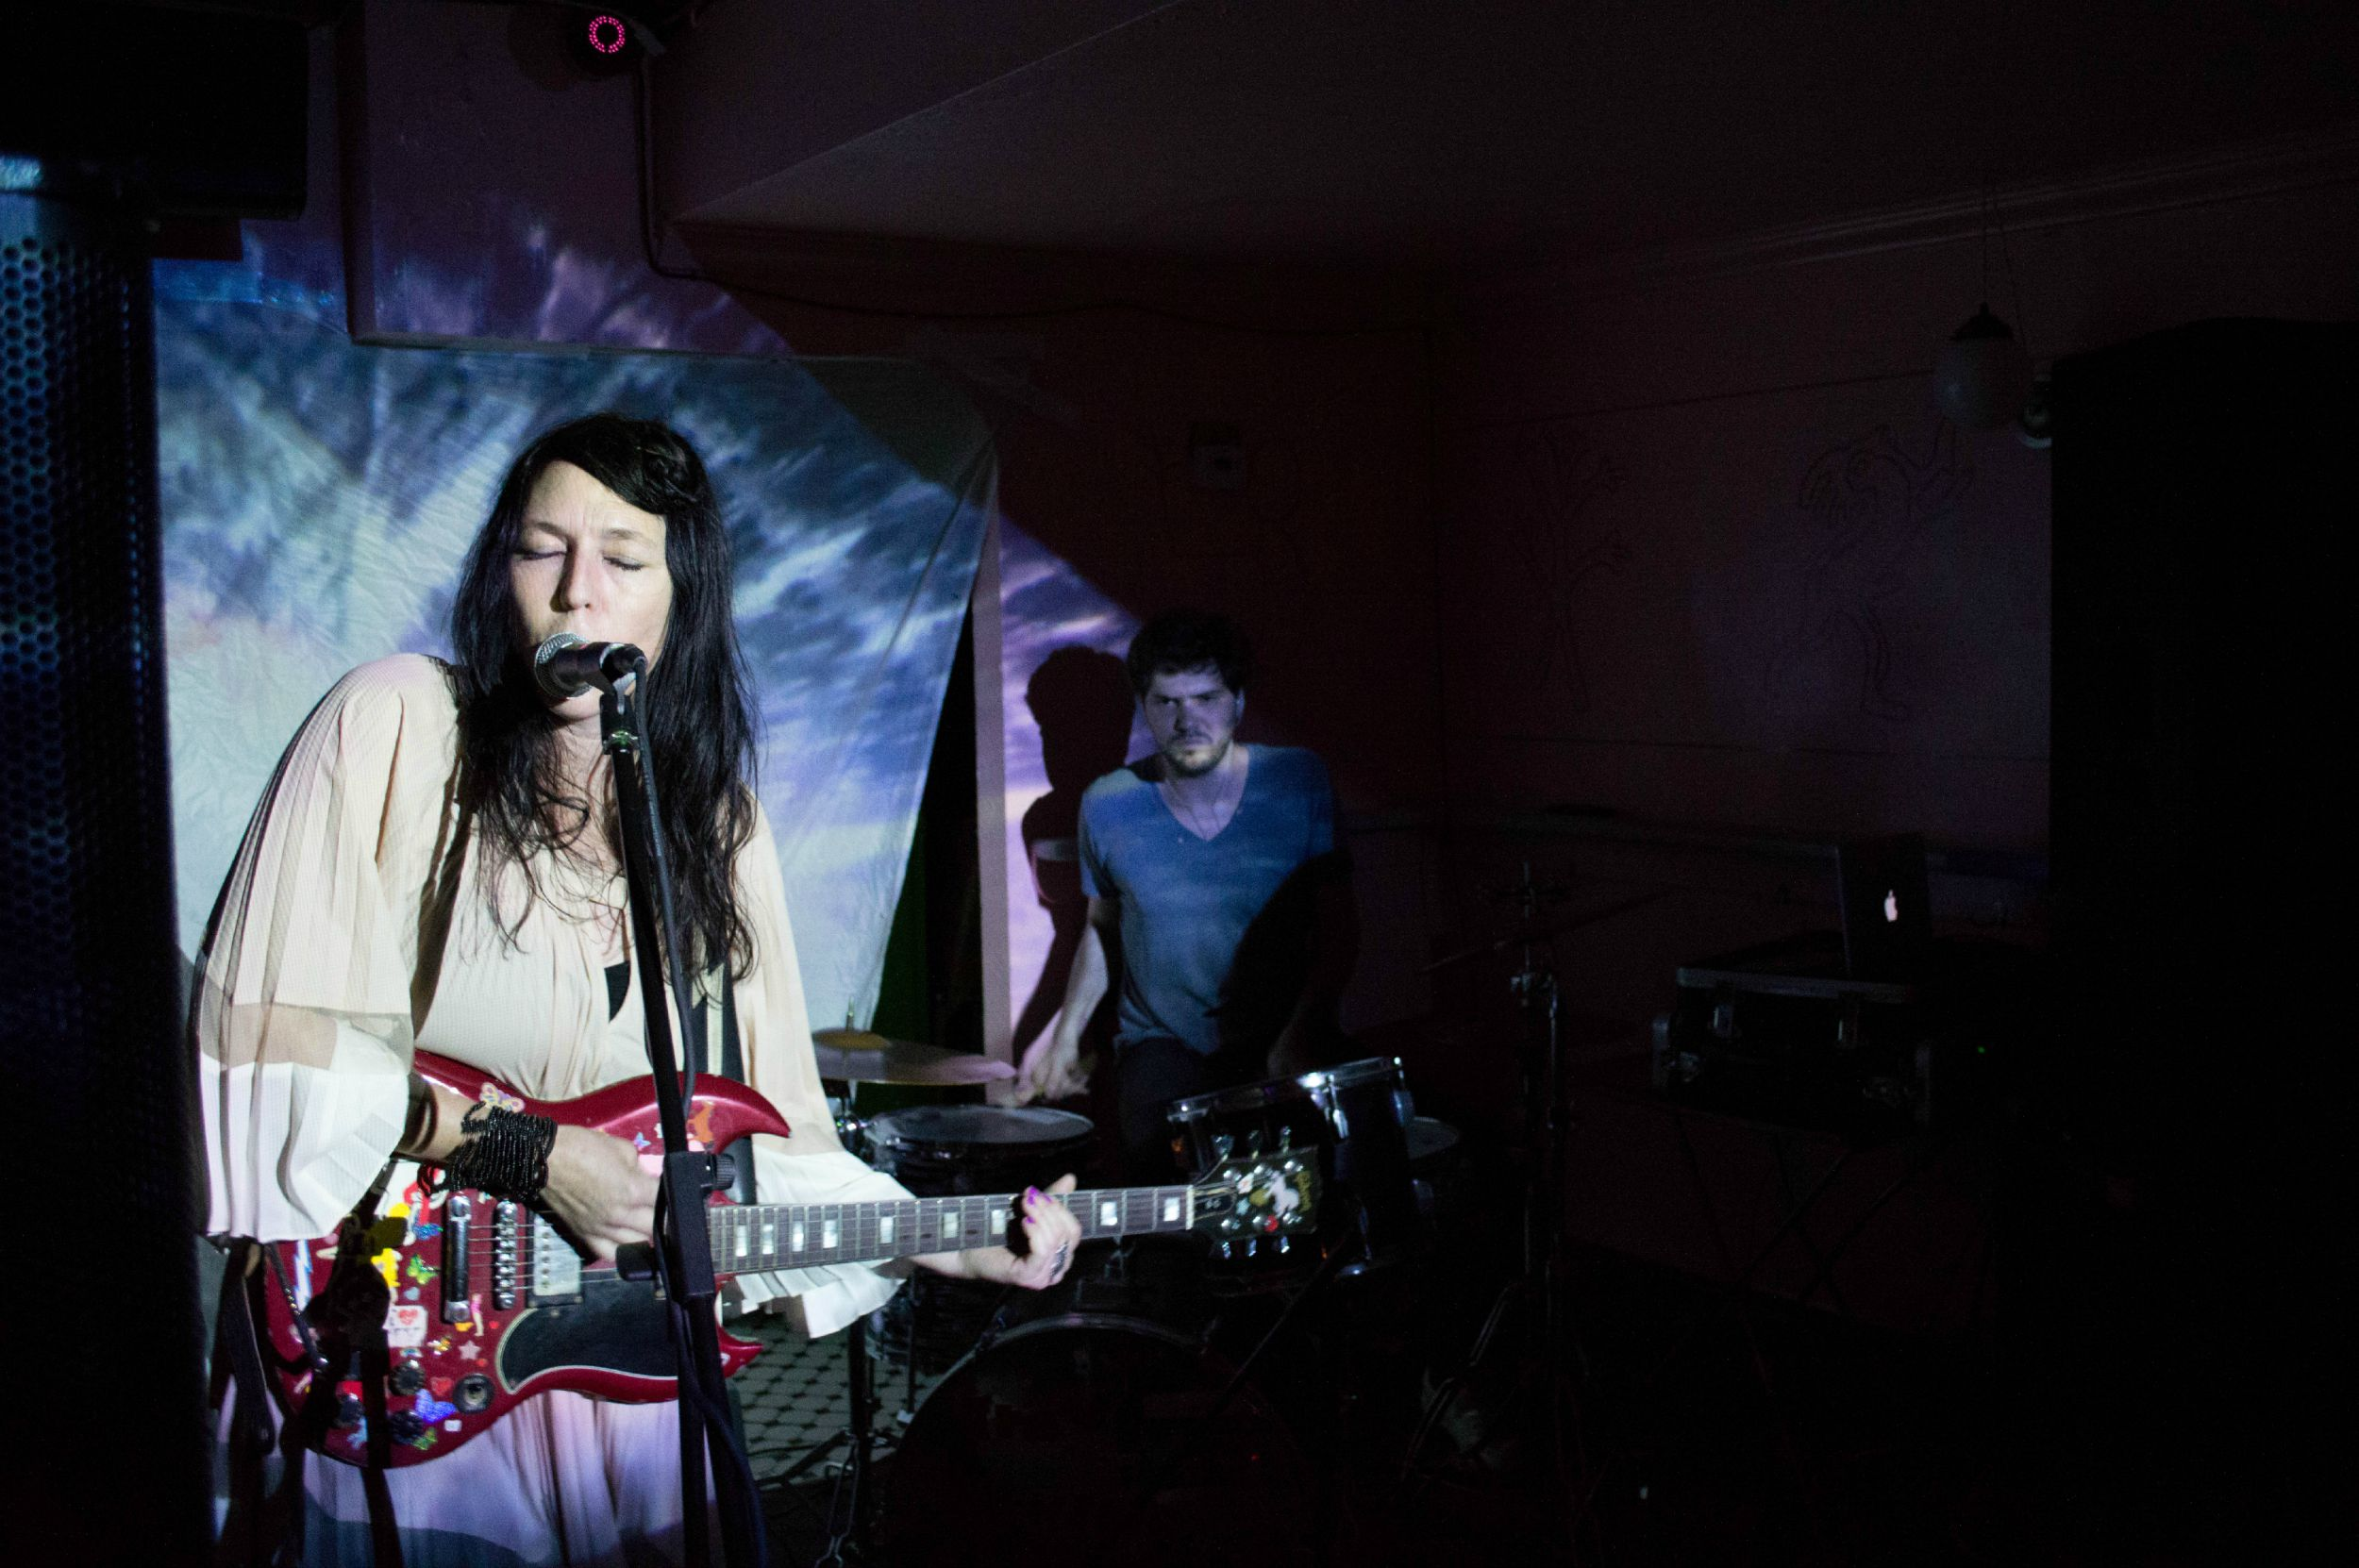 Shana Falana (NYC band) for No Smoking Media @ Elvis guesthouse